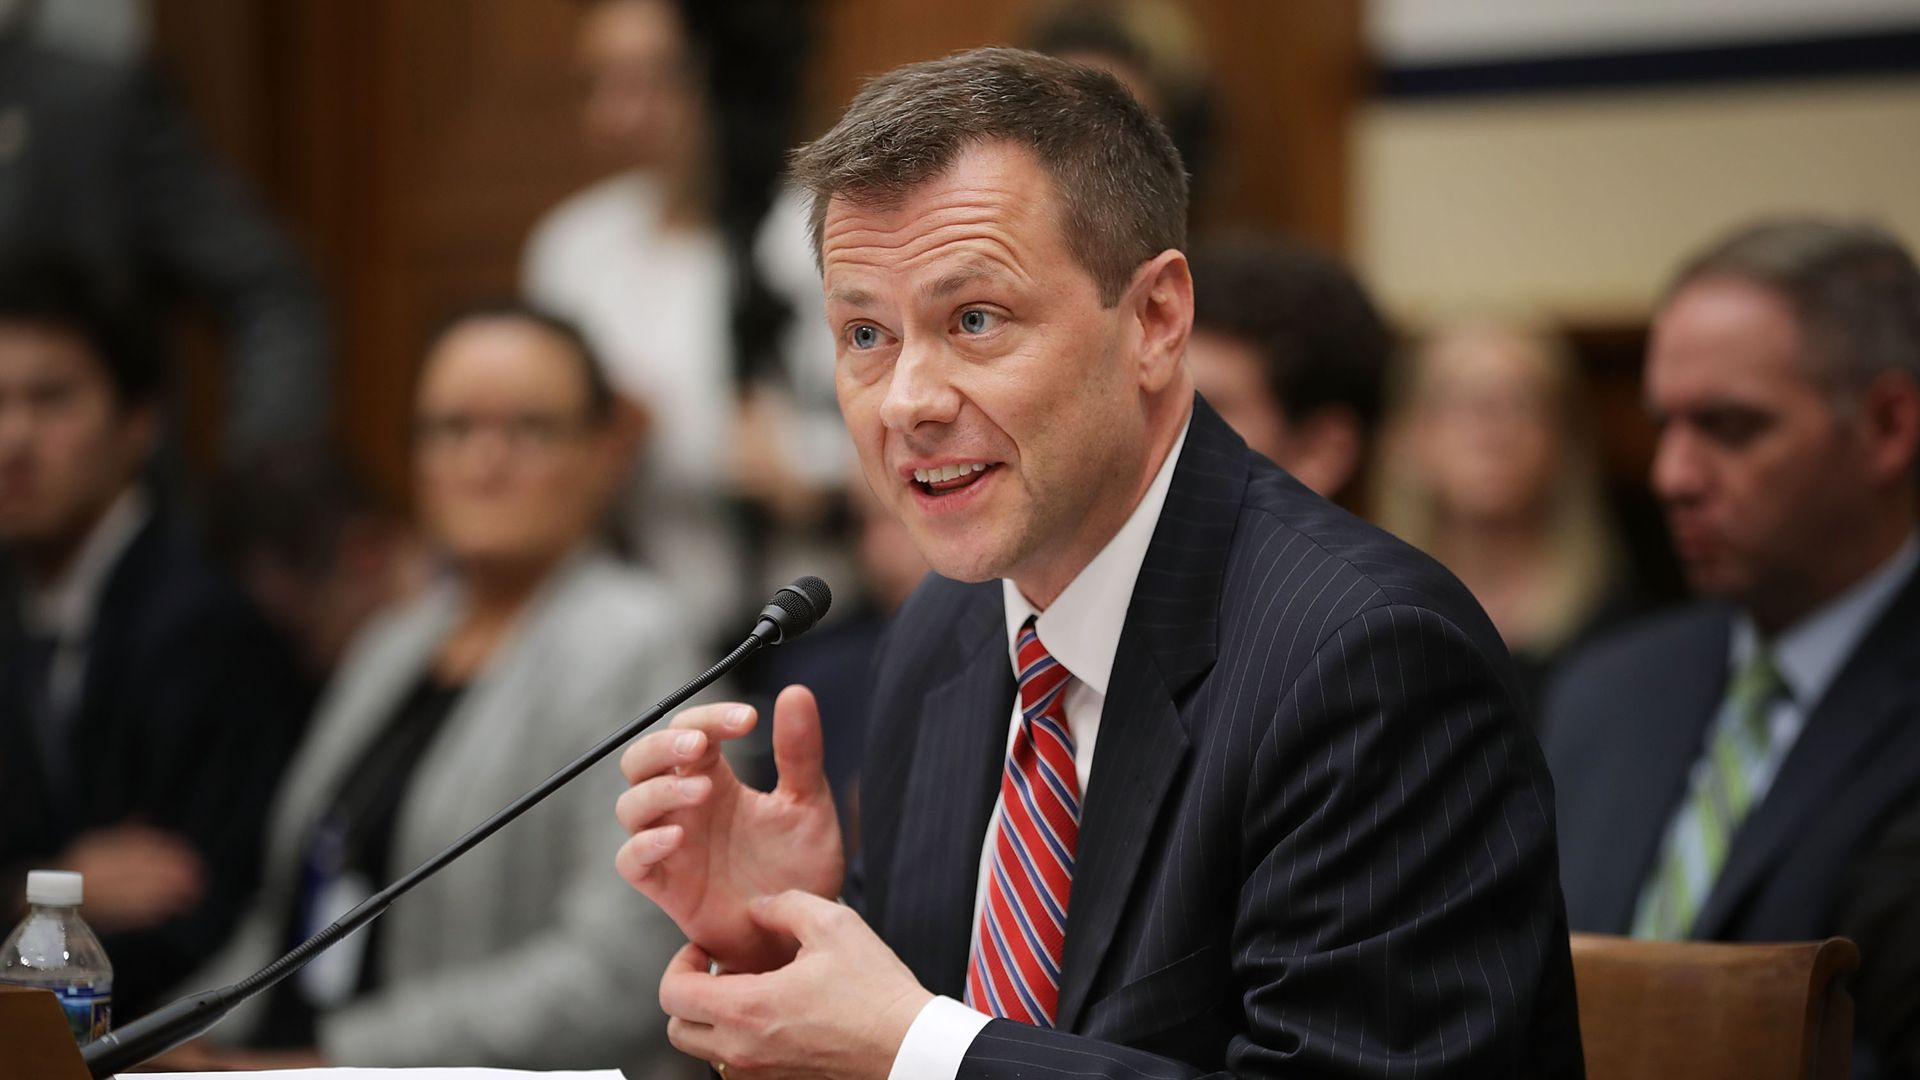 Former FBI agent Peter Strzok testifying on Capitol Hill